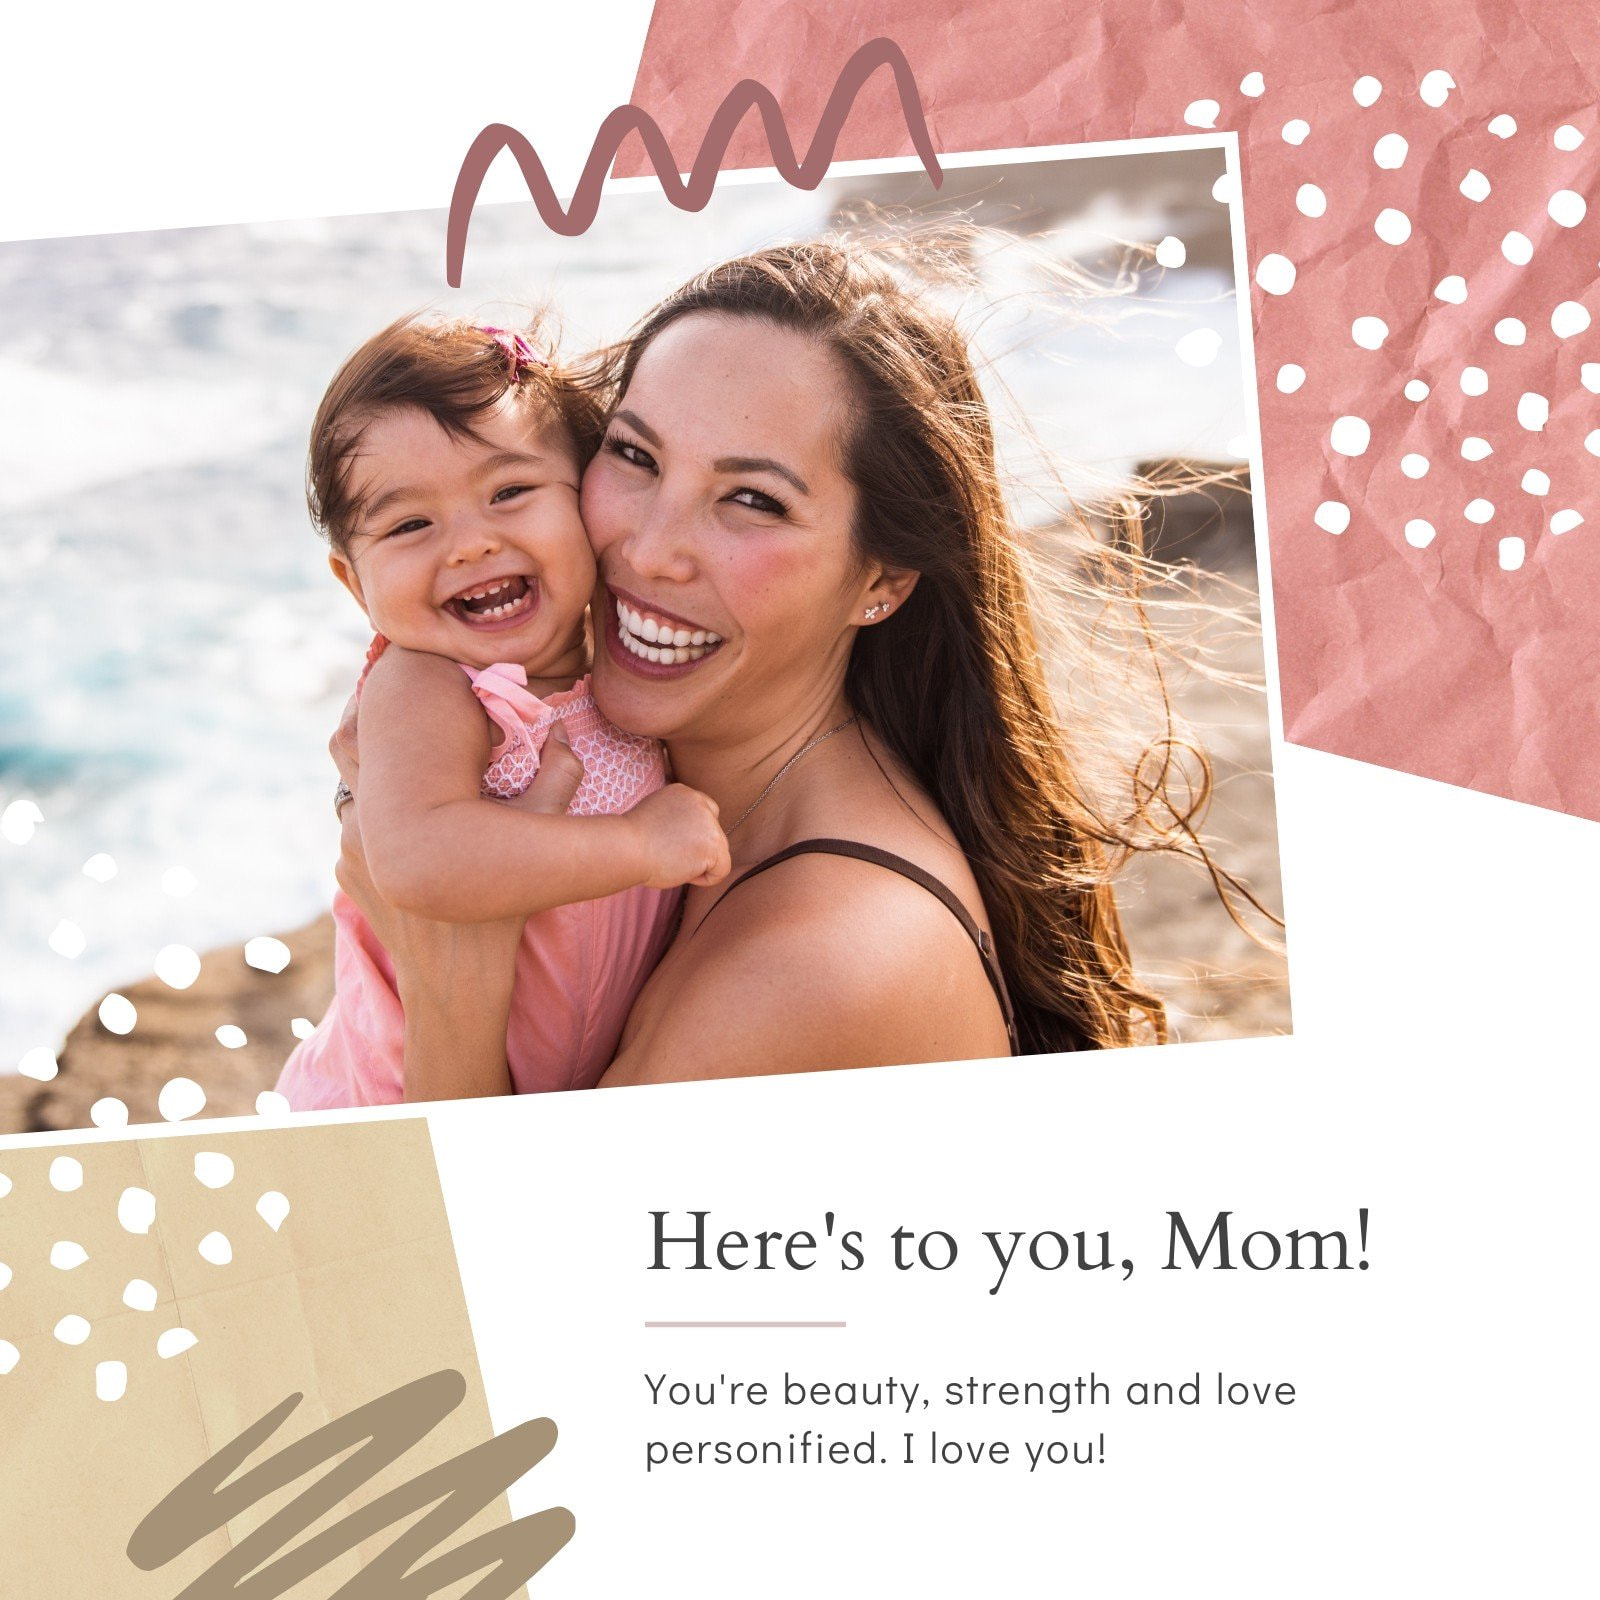 Maroon and Brown Mother's Day Personal Instagram Post